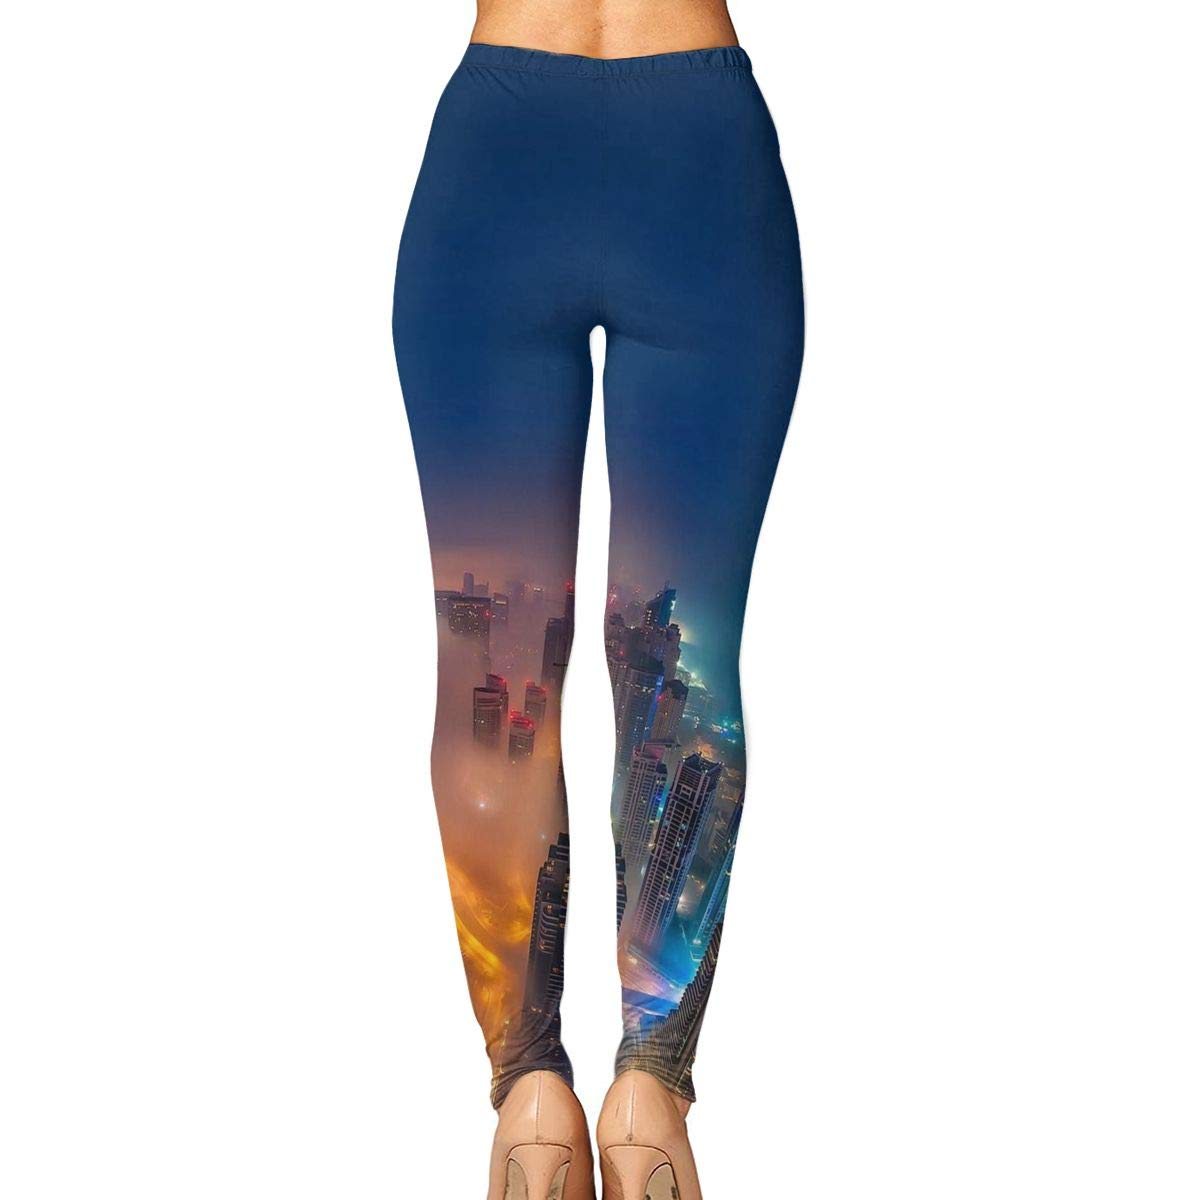 17e29ee1 Amazon.com: City Night Scene Printing Compression Leggings Pants Tights for  Women S-XL: Clothing